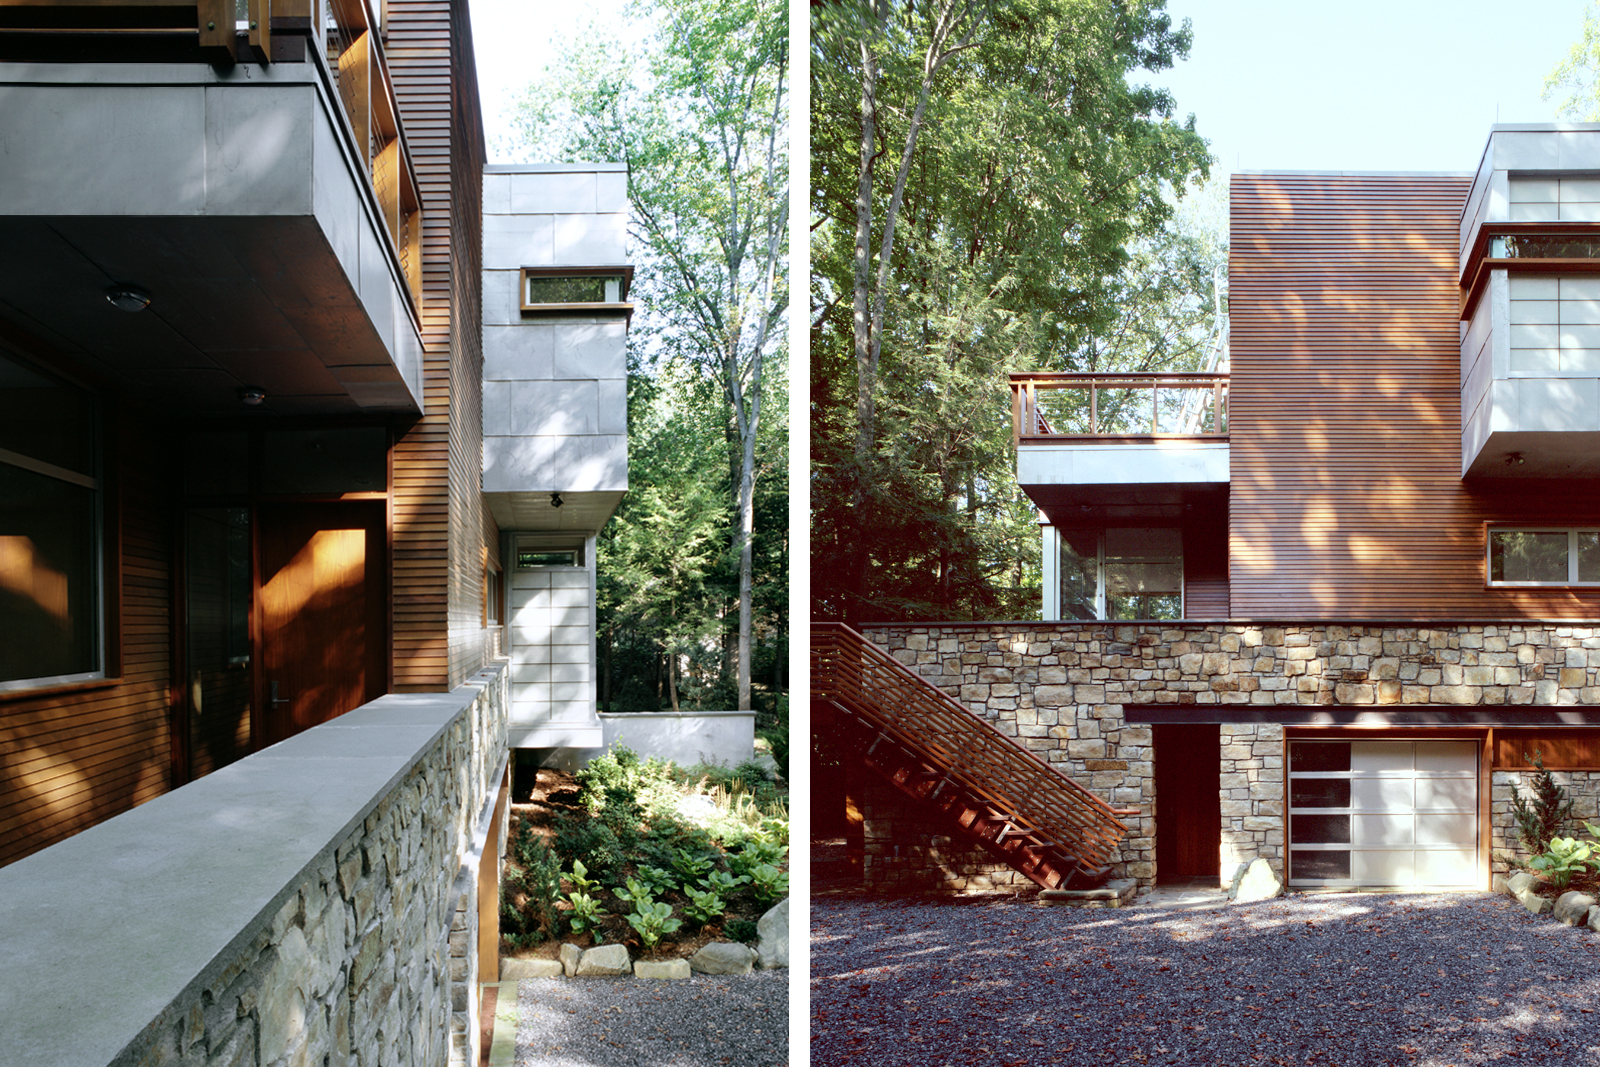 05-res4-resolution-4-architecture-modern-home-residential-lakeside-house-exterior.jpg